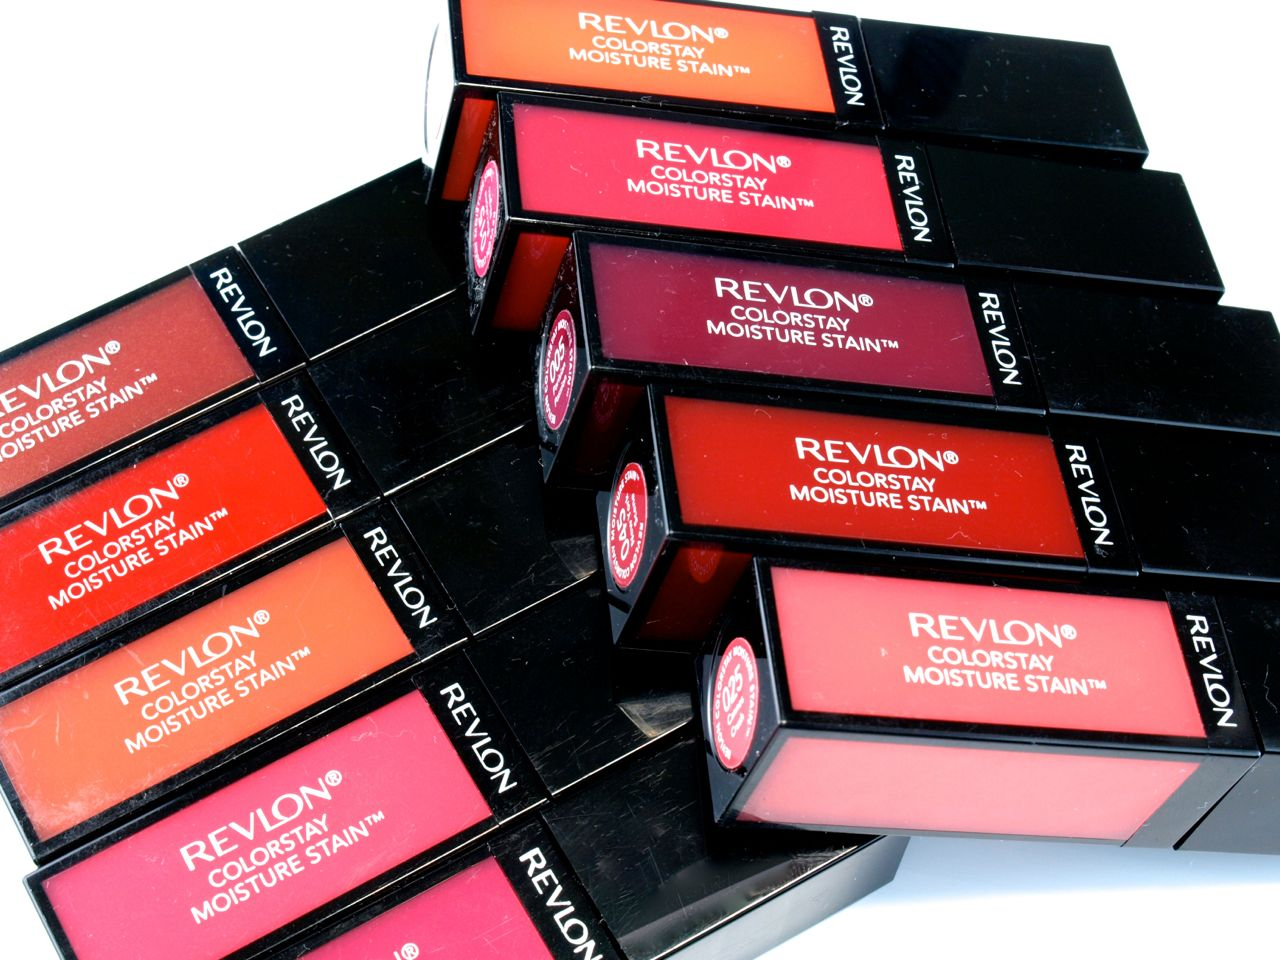 Revlon ColorStay Moisture Stain Review and Swatches